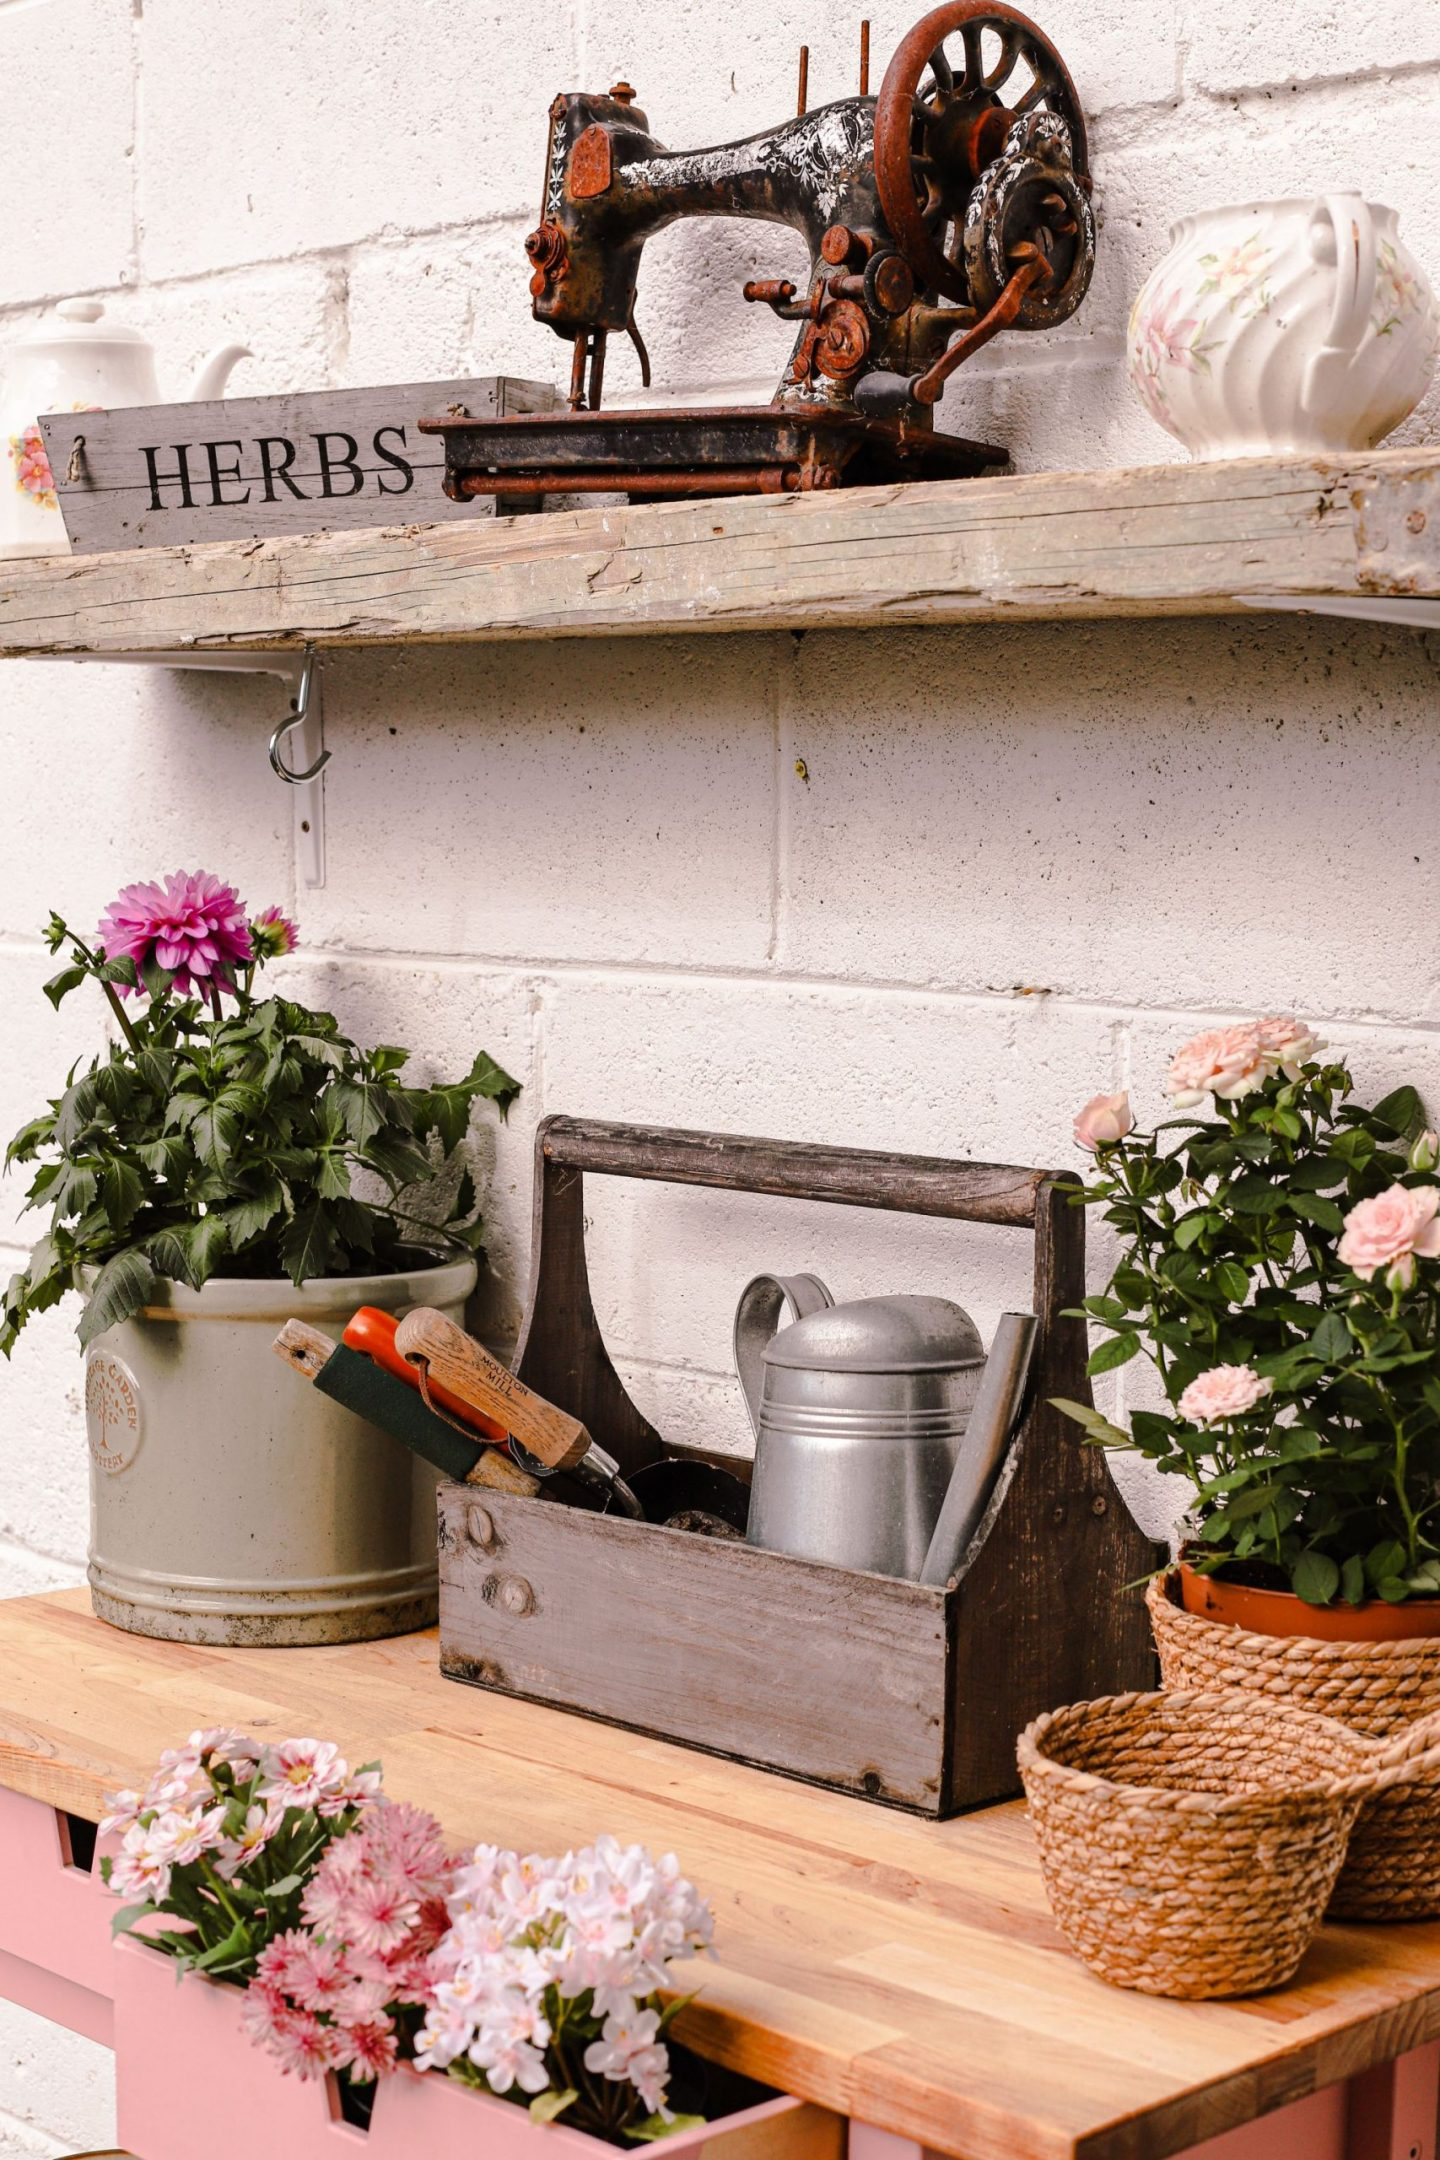 How I hacked an Ikea Forhoja cart into a garden potting bench